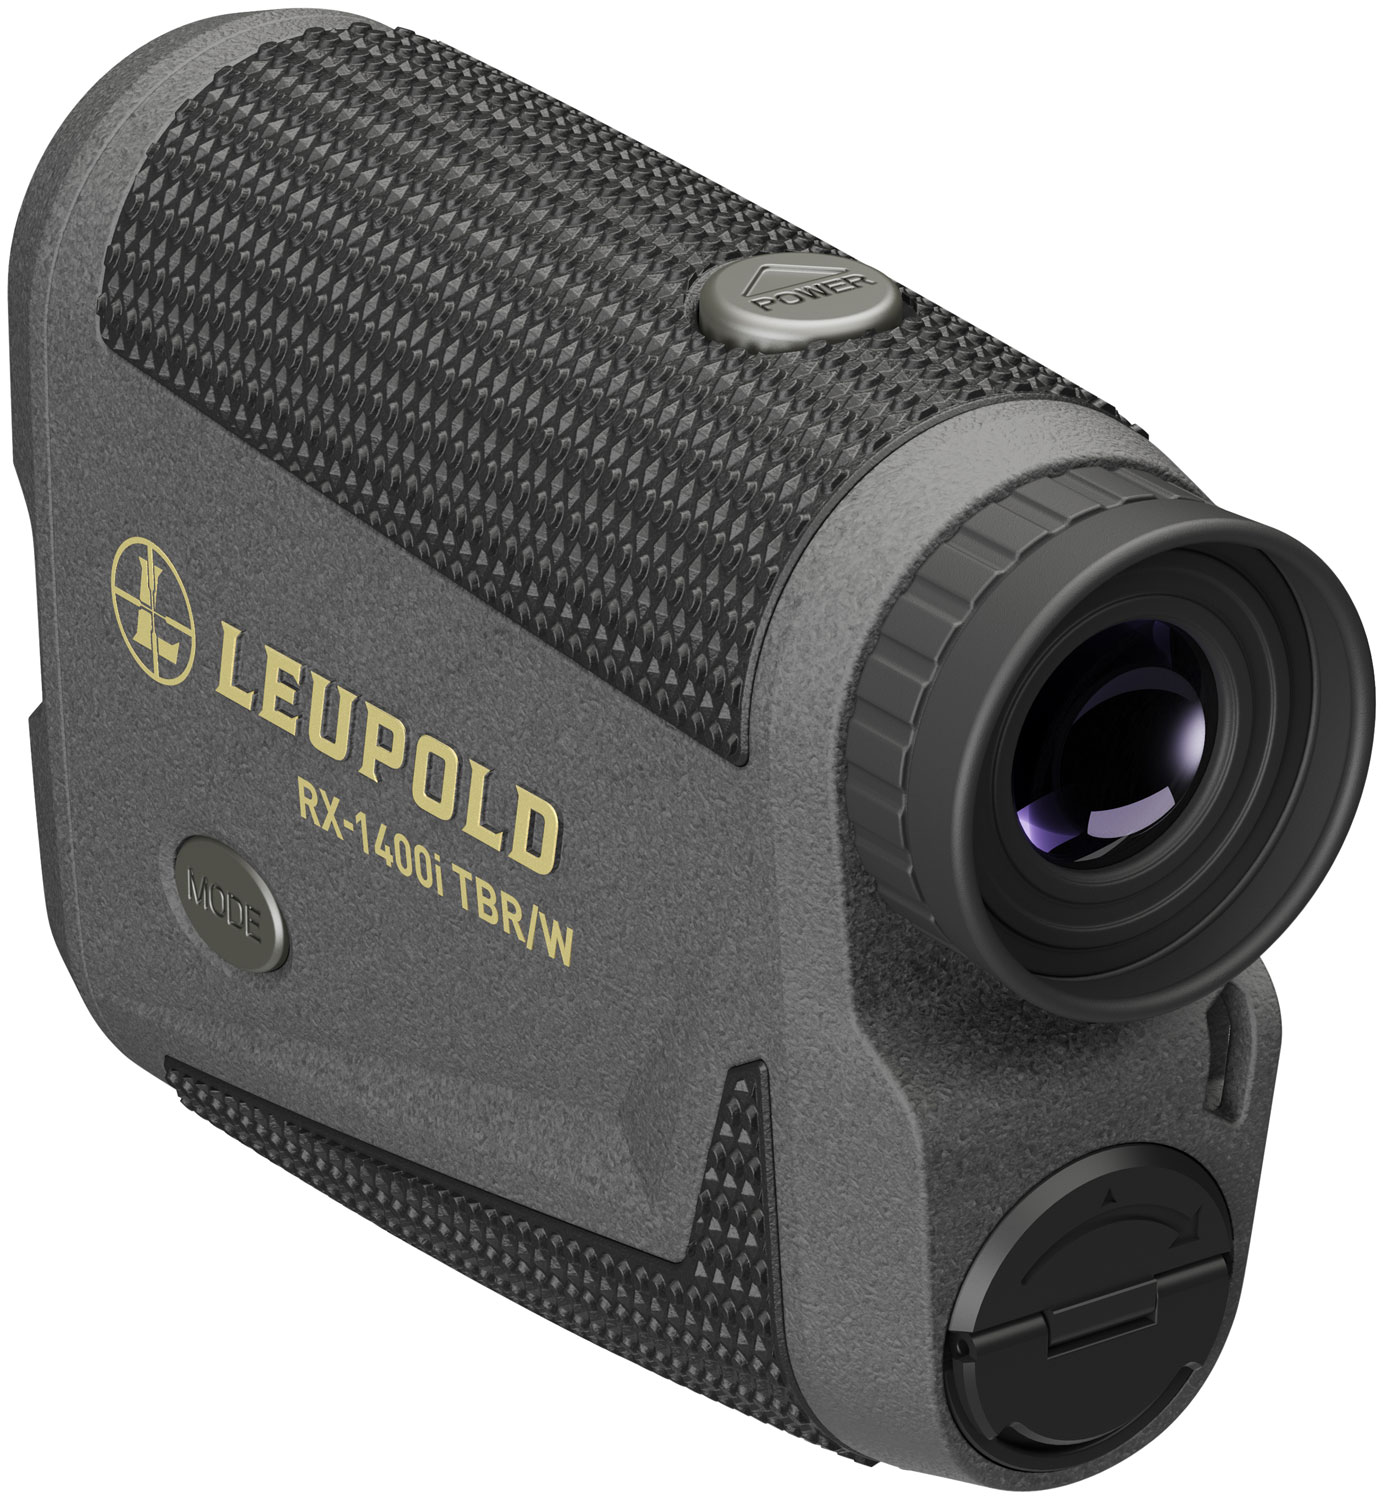 Leupold 179640 Rx-1400i  5x 21mm 950-1200 yds Gray w/Black Accents